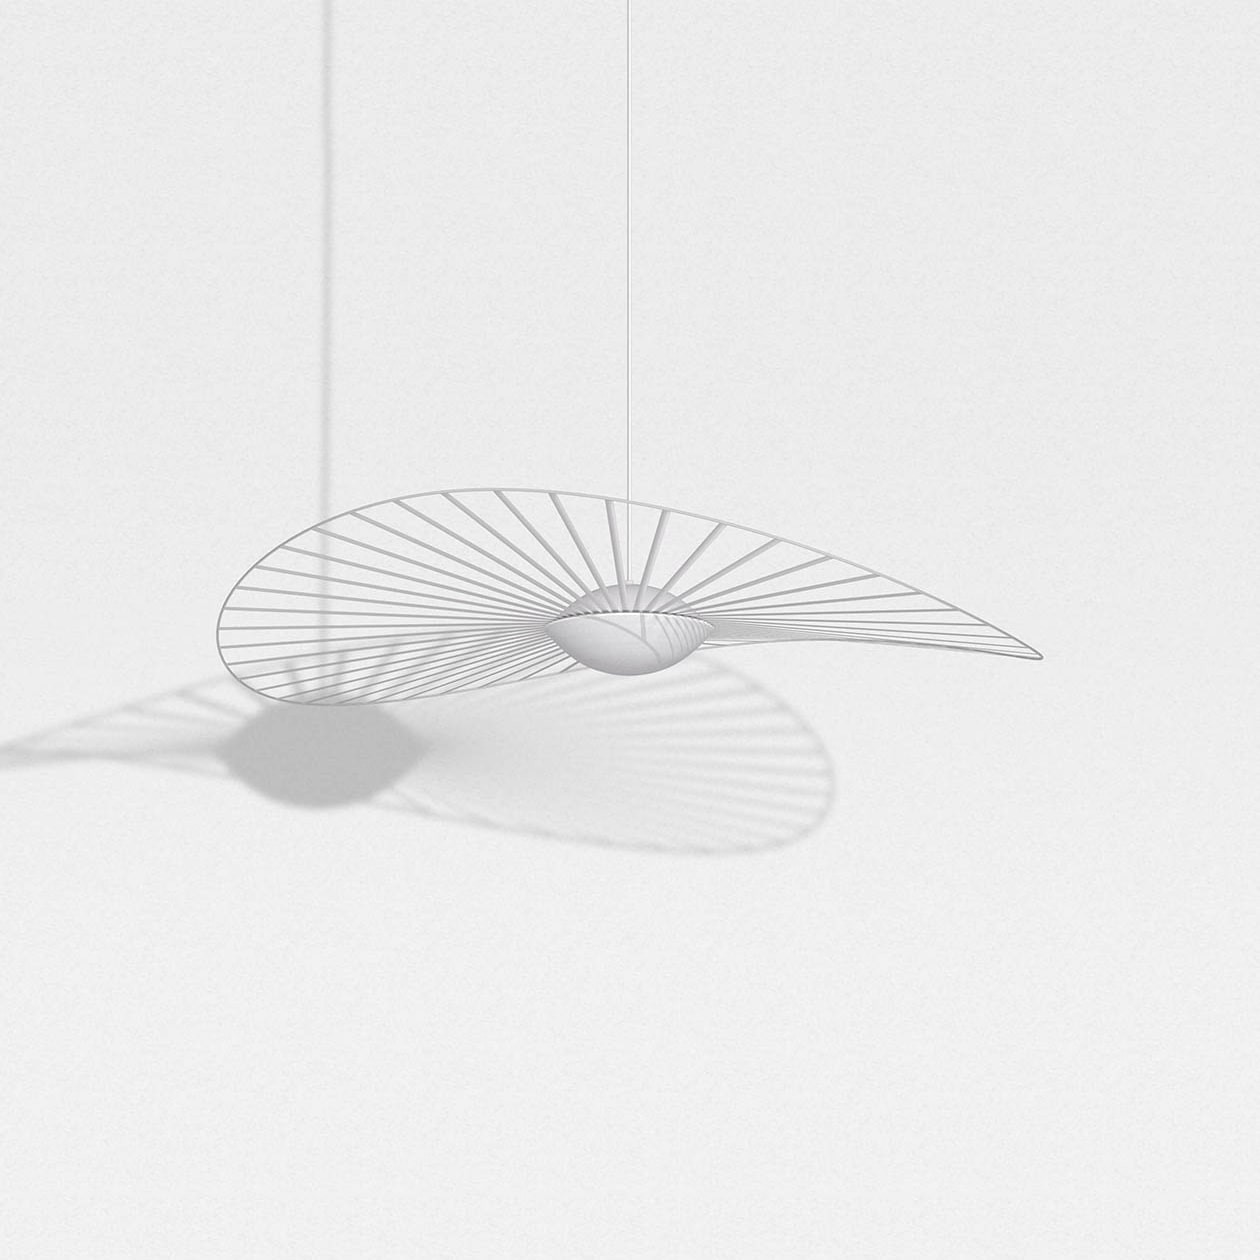 Vertigo Nova Pendant Light - Petite Friture and Constance Guisset, an inseparable duo with lofty ambitions, have started a new chapter of the Vertigo story with Vertigo Nova: a highly technical piece of sophisticated design.  The collection includes items, from table and floor lamps to suspension and wall lights, all available in either black or white. The vast veil of graphic lines mounted atop a sphere of handblown glass uses built-in LED technology to emit a soft light.  Vertigo Nova quivers as the geometric curve of the fiberglass hoop. Installed by hand by qualified French artisans and held delicately but firmly in place by taught ribbons, reacts to the lightest of breezes.  Vertigo Nova is the epitome of striking a balance between technology and elegance. | Matter of Stuff